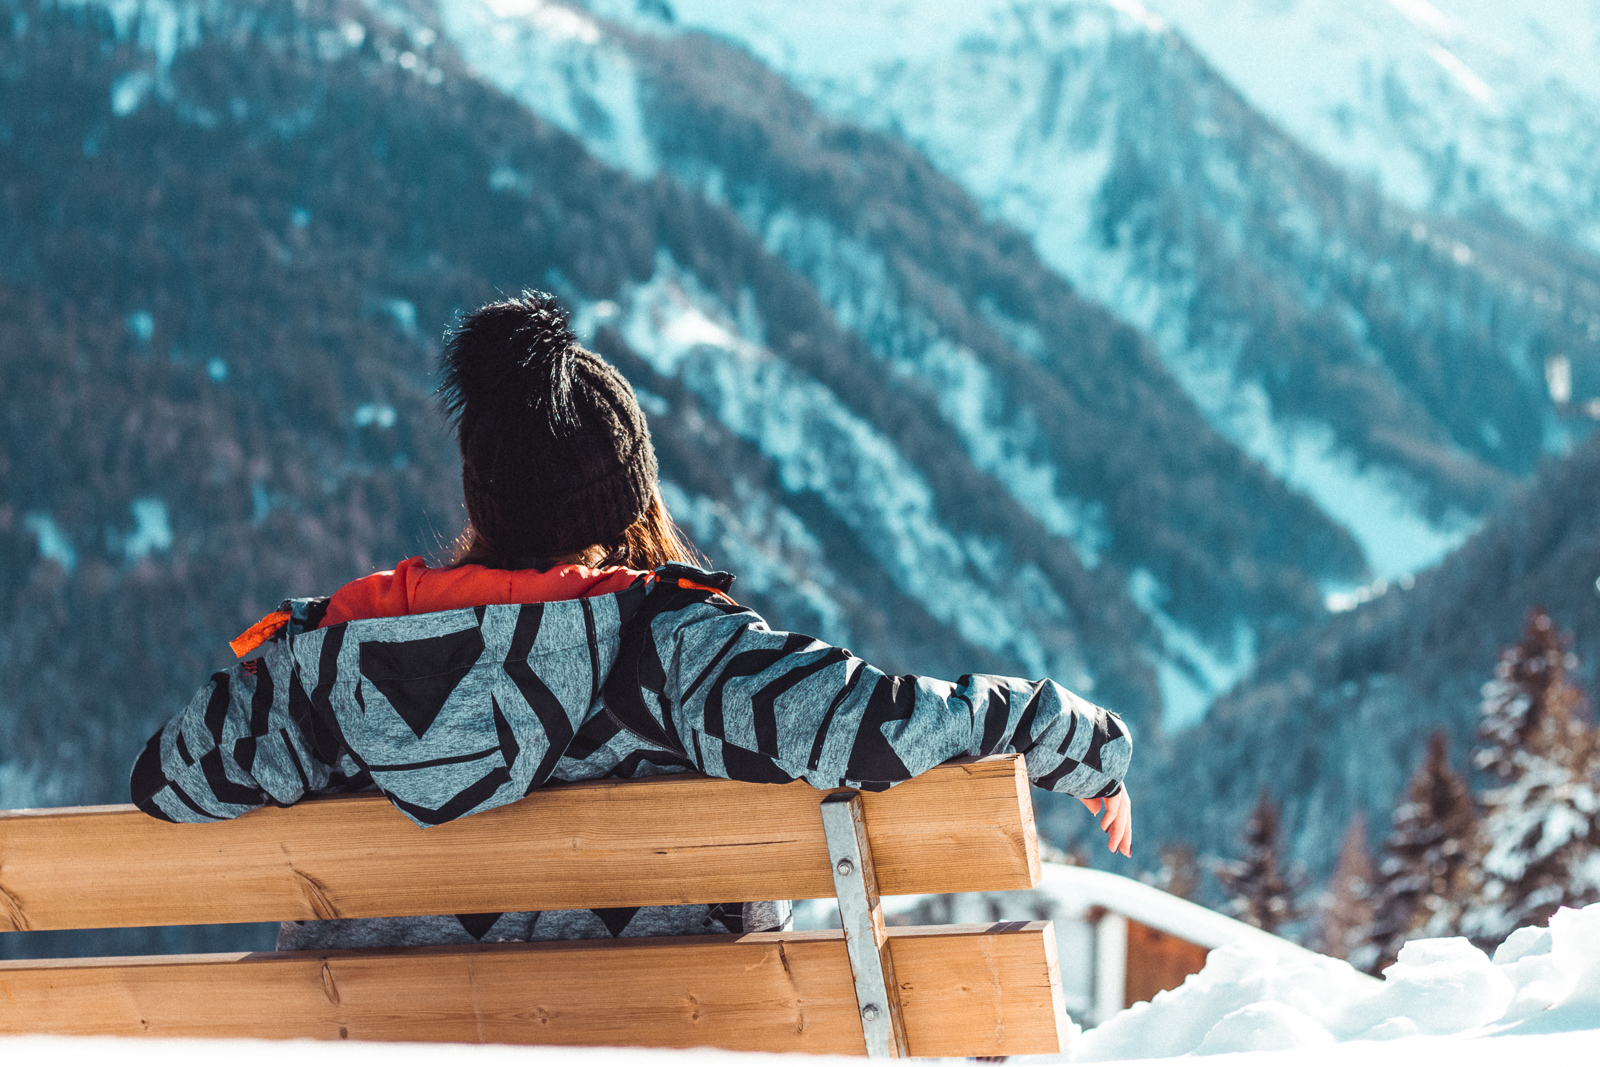 Top things to do on a ski holiday for non-skiers